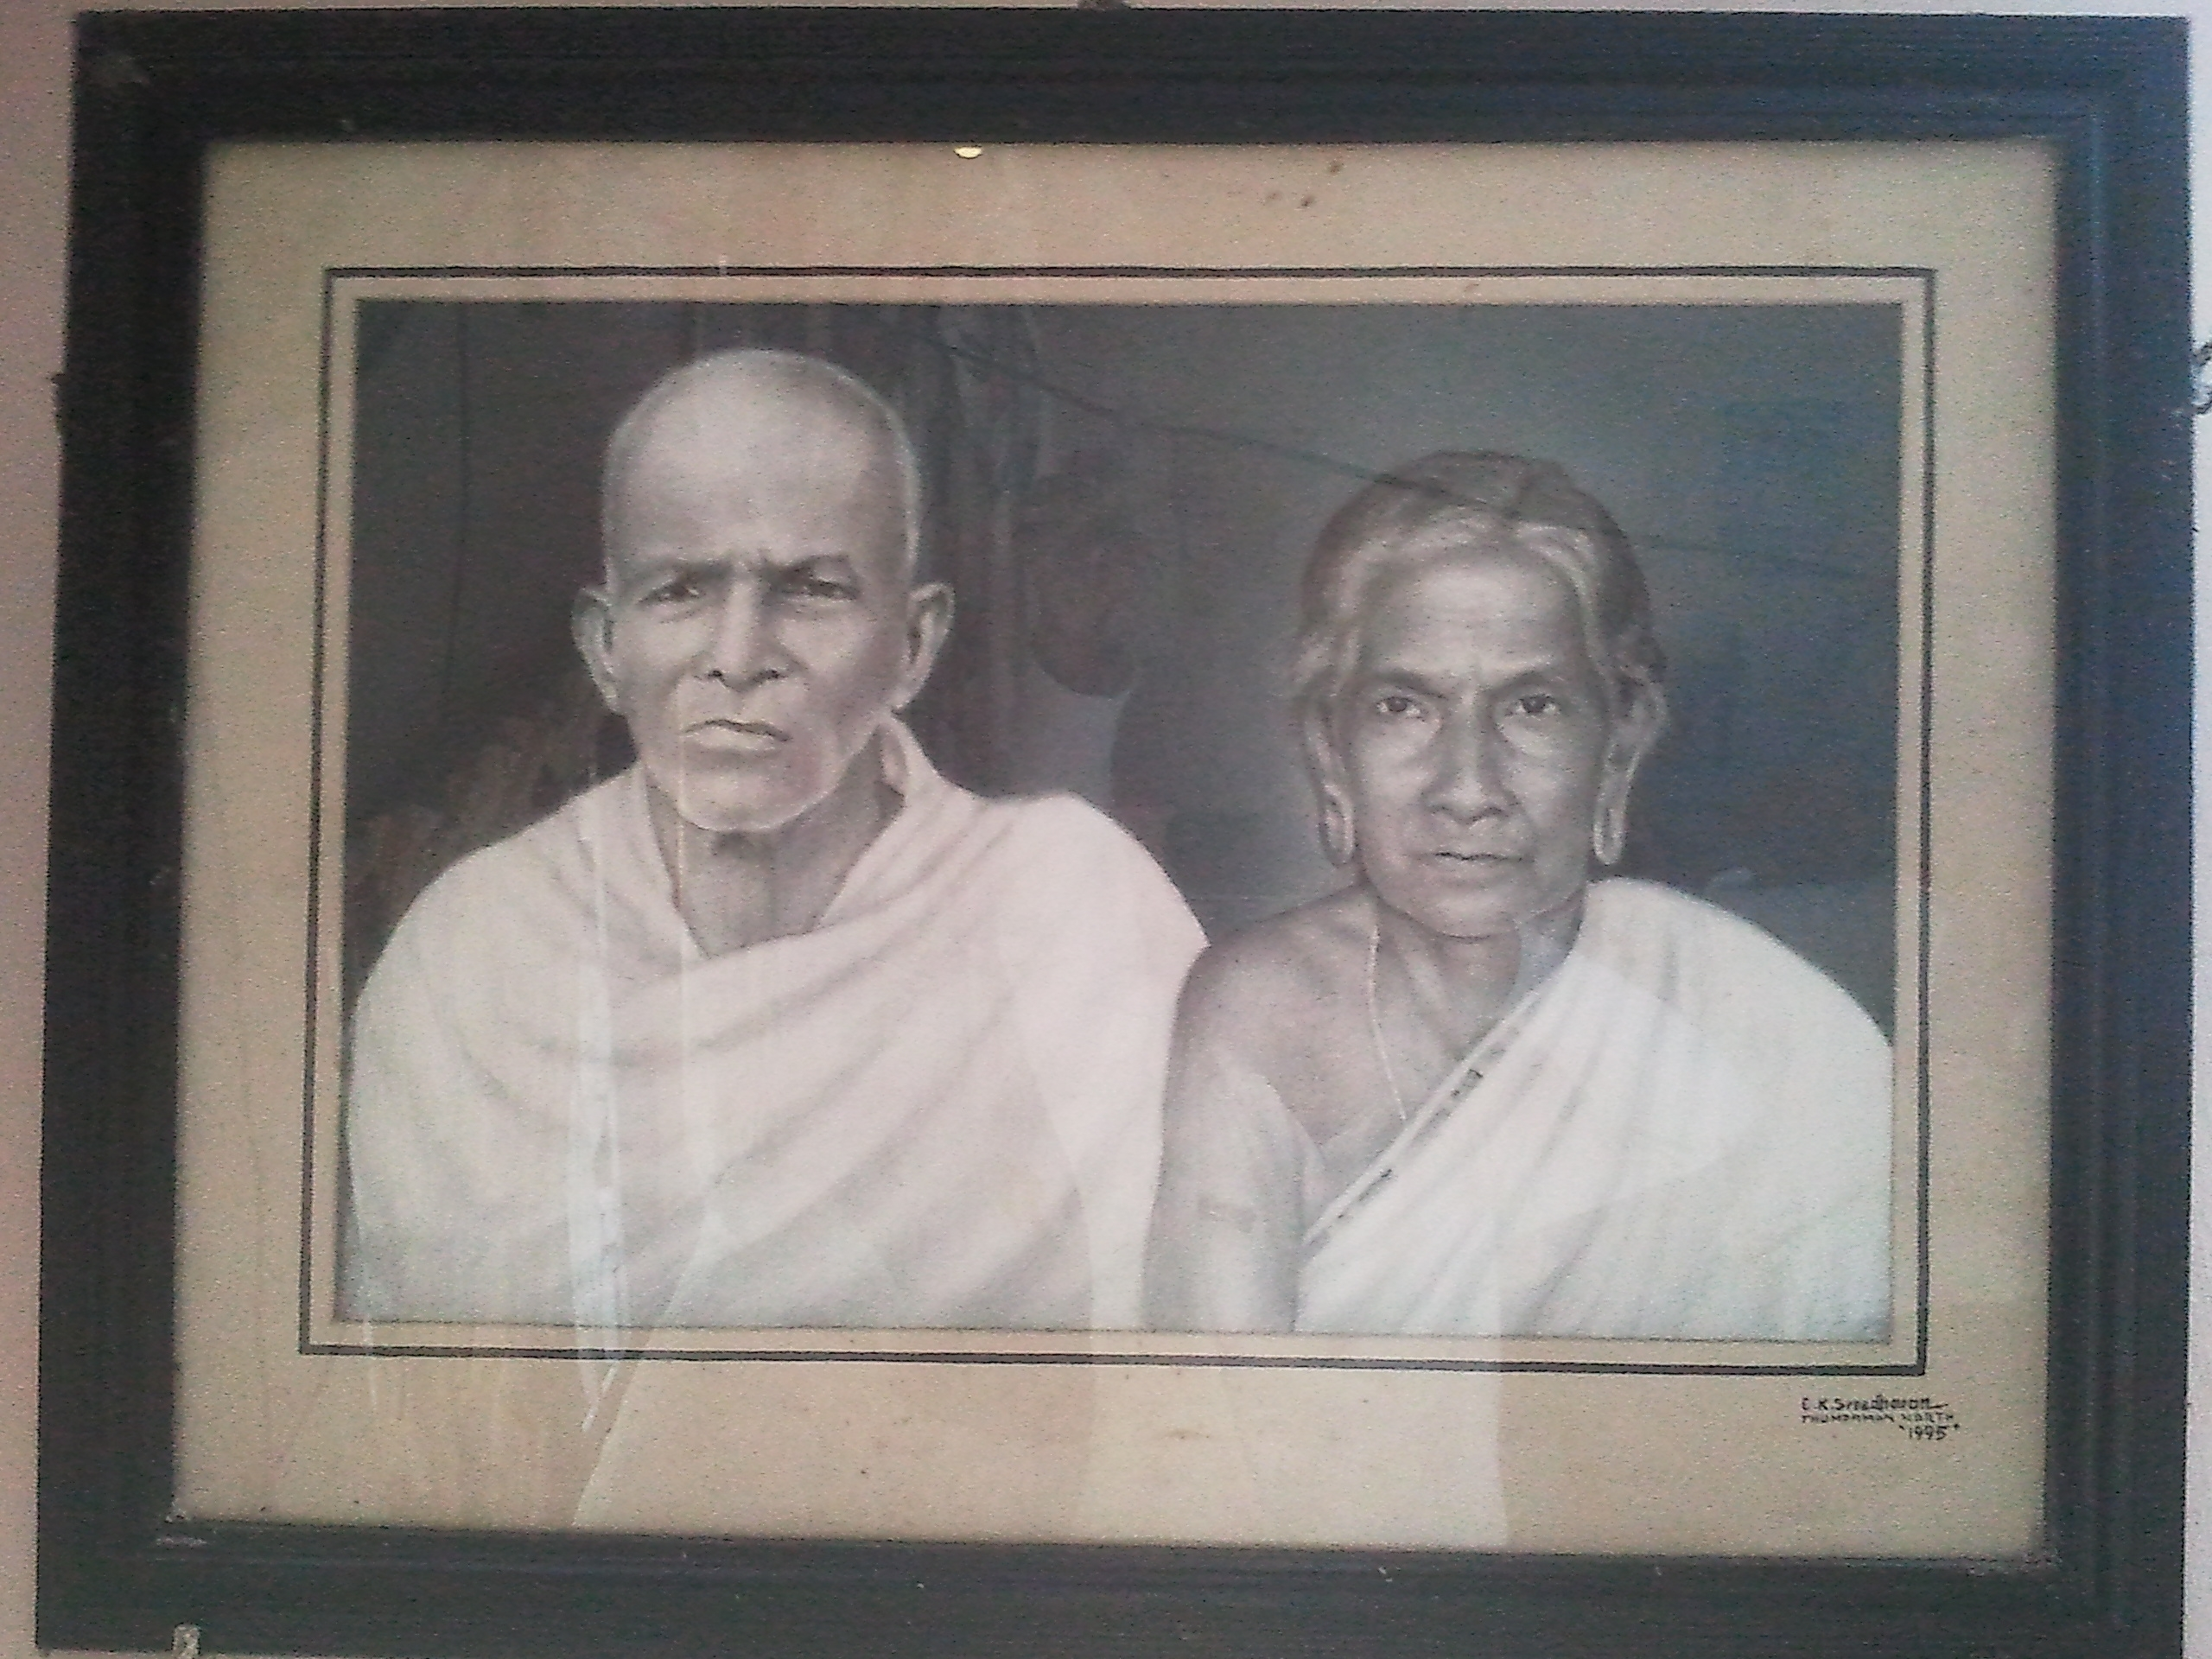 Photo: MY GOD GRANDFATHER & MY GOD GRANDMOTHER (Sri.VelutthaKunju ''Ayathil 'Panicker'Muthalali & Smt.chakkiAmma ''Ayathil 'Panicker'Muthalali)Our high reputed families was known as''Ayathil 'Panicker'Muthalali EZHAVA Families' OF AYATHIL FIELDS '(A Honorific hereditary family title affix name bestowed by'' KING His highness Pandalam Varma'' ) our old family was Land Owners & Merchants,                  ',There was a history in ancient times ABOUT OUR FAMILY ,'when KING PANDALAM of ROYAL family  visited our ayathil'fields  in early morning in elavumthitta region.'KING PANDALAM was insulted & teased by our gladiators (Chekavar)owned by my great god grand father's father Sri.Kunju'Krishnan'Ayathil Panicker Muthalali,thus the king got very angry , and his nair- ezhava soldiers forcefully took away our gladiators(Chekavar) swords , bows and arrows ,and also forcefully took away the axes of our slaves too, then the king as usual went to nearest fields ,  BUT when the KING returned in evening  to our fields  on the way to his pandalam palace ' he was SHOCKED by seeing My great god grandfather's gladiator(Chekavar) with new GOLDEN  swords , bows ,arrows AND axes of our slaves are all made of GOLD. The king was surprised by the wealth and richness of my great god grandfather & family as landlord  ,and then KING PANDALAM smiled with RESPECT to my great god grandfather and told him these words :''YOUR FATE WILL NEVER CHANGE DESTINY ''and also given him SURNAME as :Sri.VelutthaKunju ''Ayathil 'Panicker' Muthalali of ezhava Families  (A Honorific hereditary family title affix name bestowed by'' KING His highness Pandalam Varma'' of royal family)